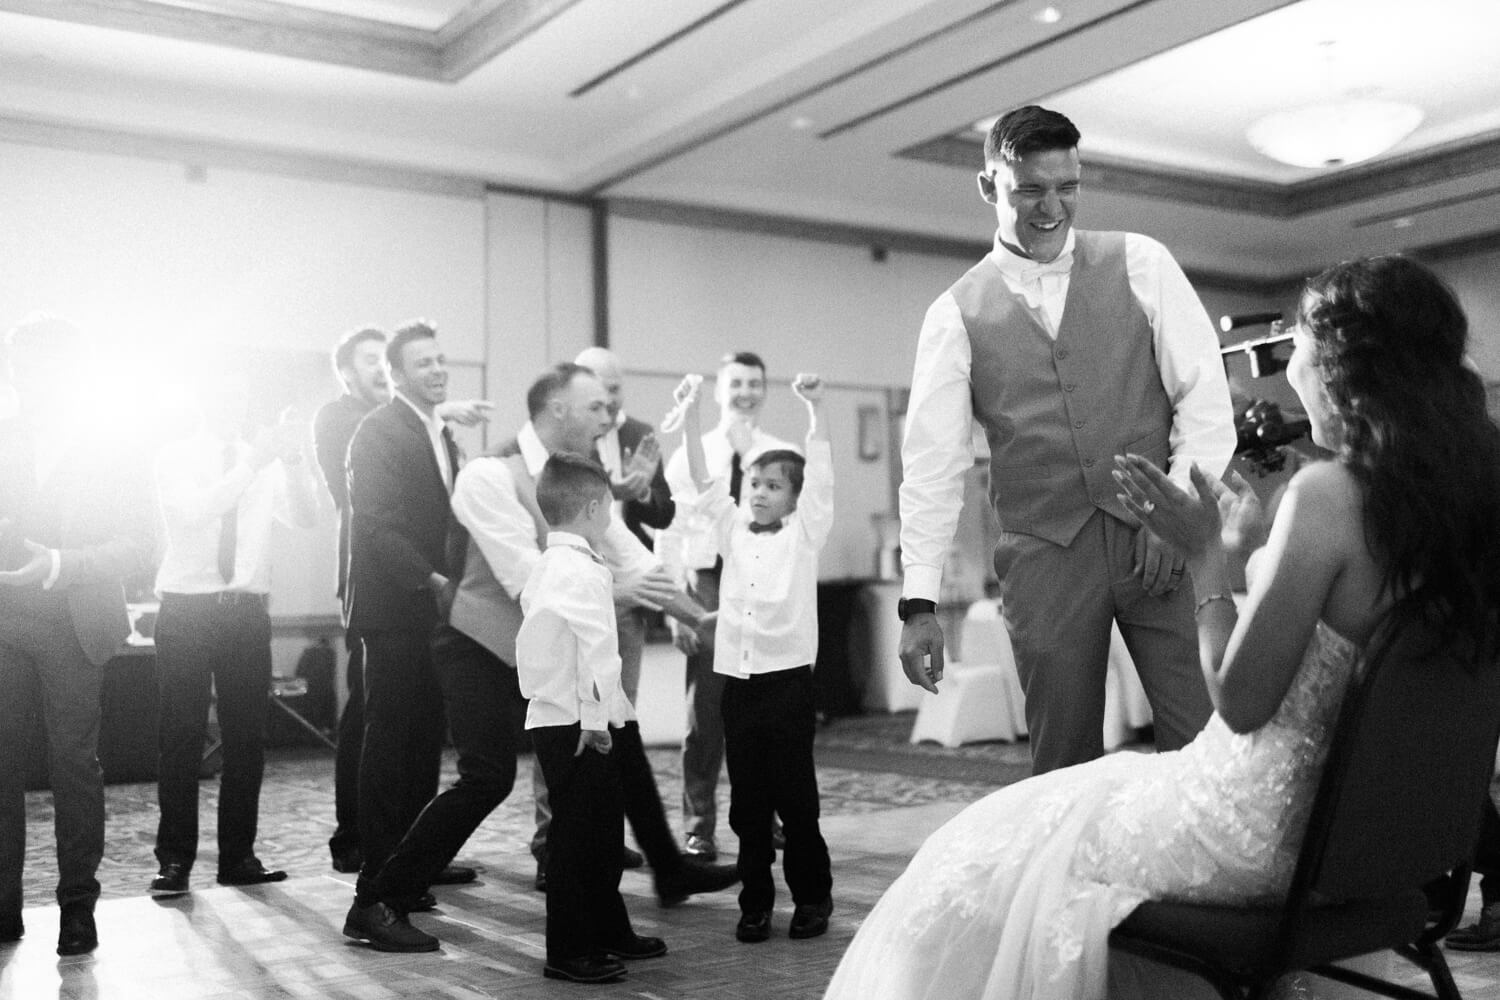 a kid catching the garter during the garter toss as the groom laughs with bride